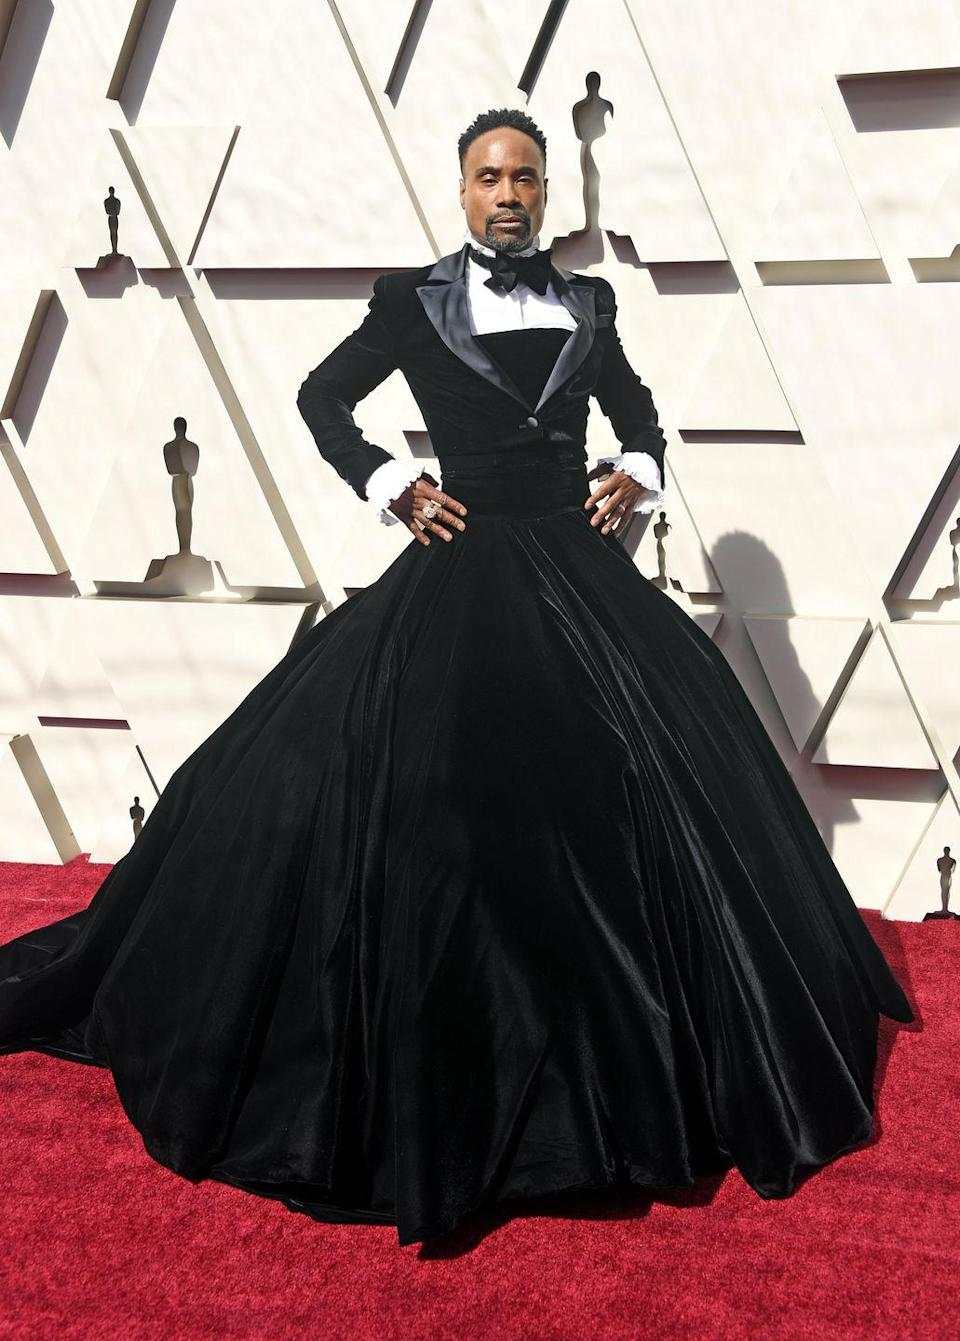 """<p>This was the moment Billy Porter 'won' the Oscars red carpet. </p><p>Wearing a black velvet Christian Siriano ballgown and matching tuxedo jacket, he described his outfit as <a href=""""https://www.elle.com/culture/movies-tv/a26500852/billy-porter-christian-siriano-oscars-2019-red-carpet/"""" rel=""""nofollow noopener"""" target=""""_blank"""" data-ylk=""""slk:'political art'."""" class=""""link rapid-noclick-resp"""">'political art'.</a><br></p><p>Porter later shared a photo of the dress on <a href=""""https://www.instagram.com/p/BuSF3dEl_e0/"""" rel=""""nofollow noopener"""" target=""""_blank"""" data-ylk=""""slk:Instagram"""" class=""""link rapid-noclick-resp"""">Instagram</a> and wrote: 'When you come to the Oscars, you must dress up. Thanks @csiriano for creating this custom couture masterpiece. @oscarheyman you have outdone yourselves once again with your iconic jewels.'</p>"""